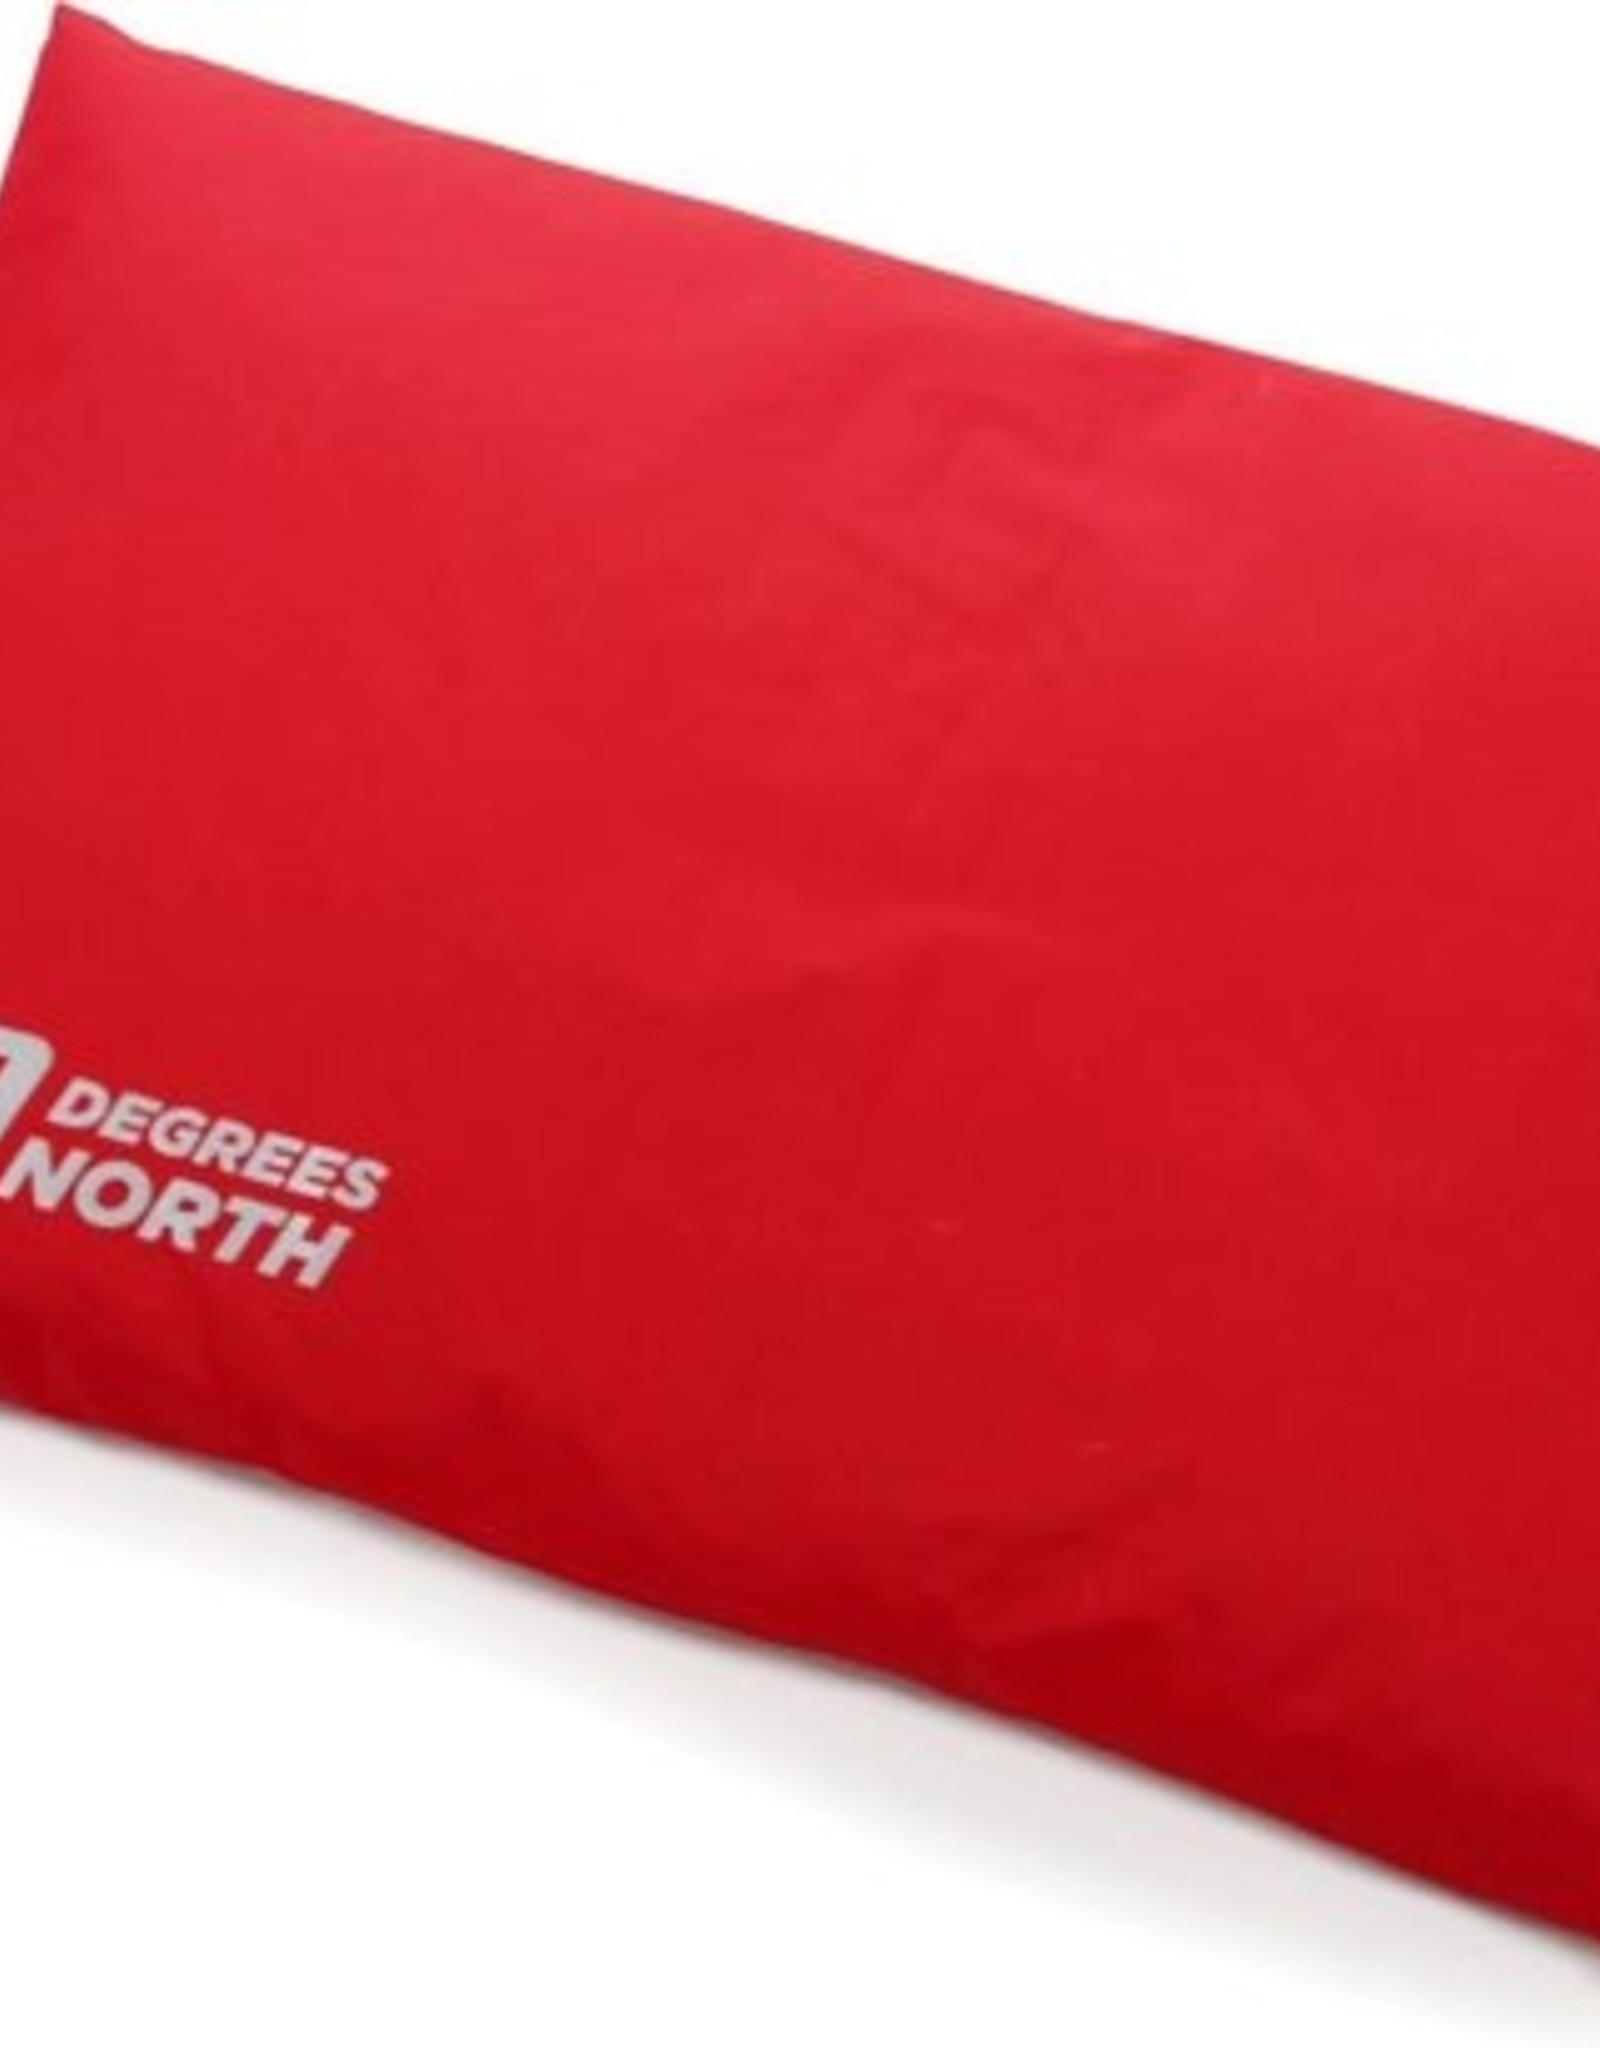 51 Degrees North Storm bench cushion